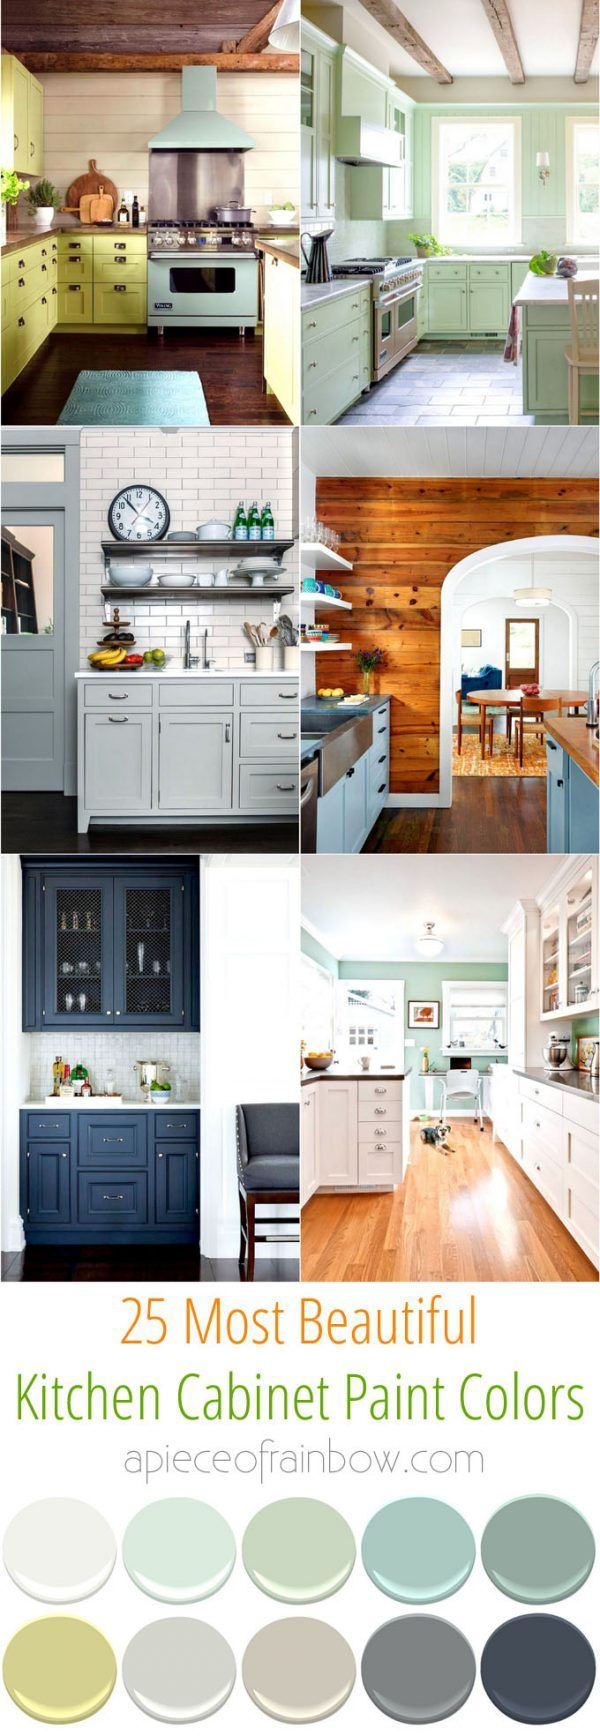 Kitchen Cabinet Paint Pallette   25 Color Palettes For Kitchens And Beyond.  Easily Transform Your Space With These All Time Favorite Colors And  Designer ...